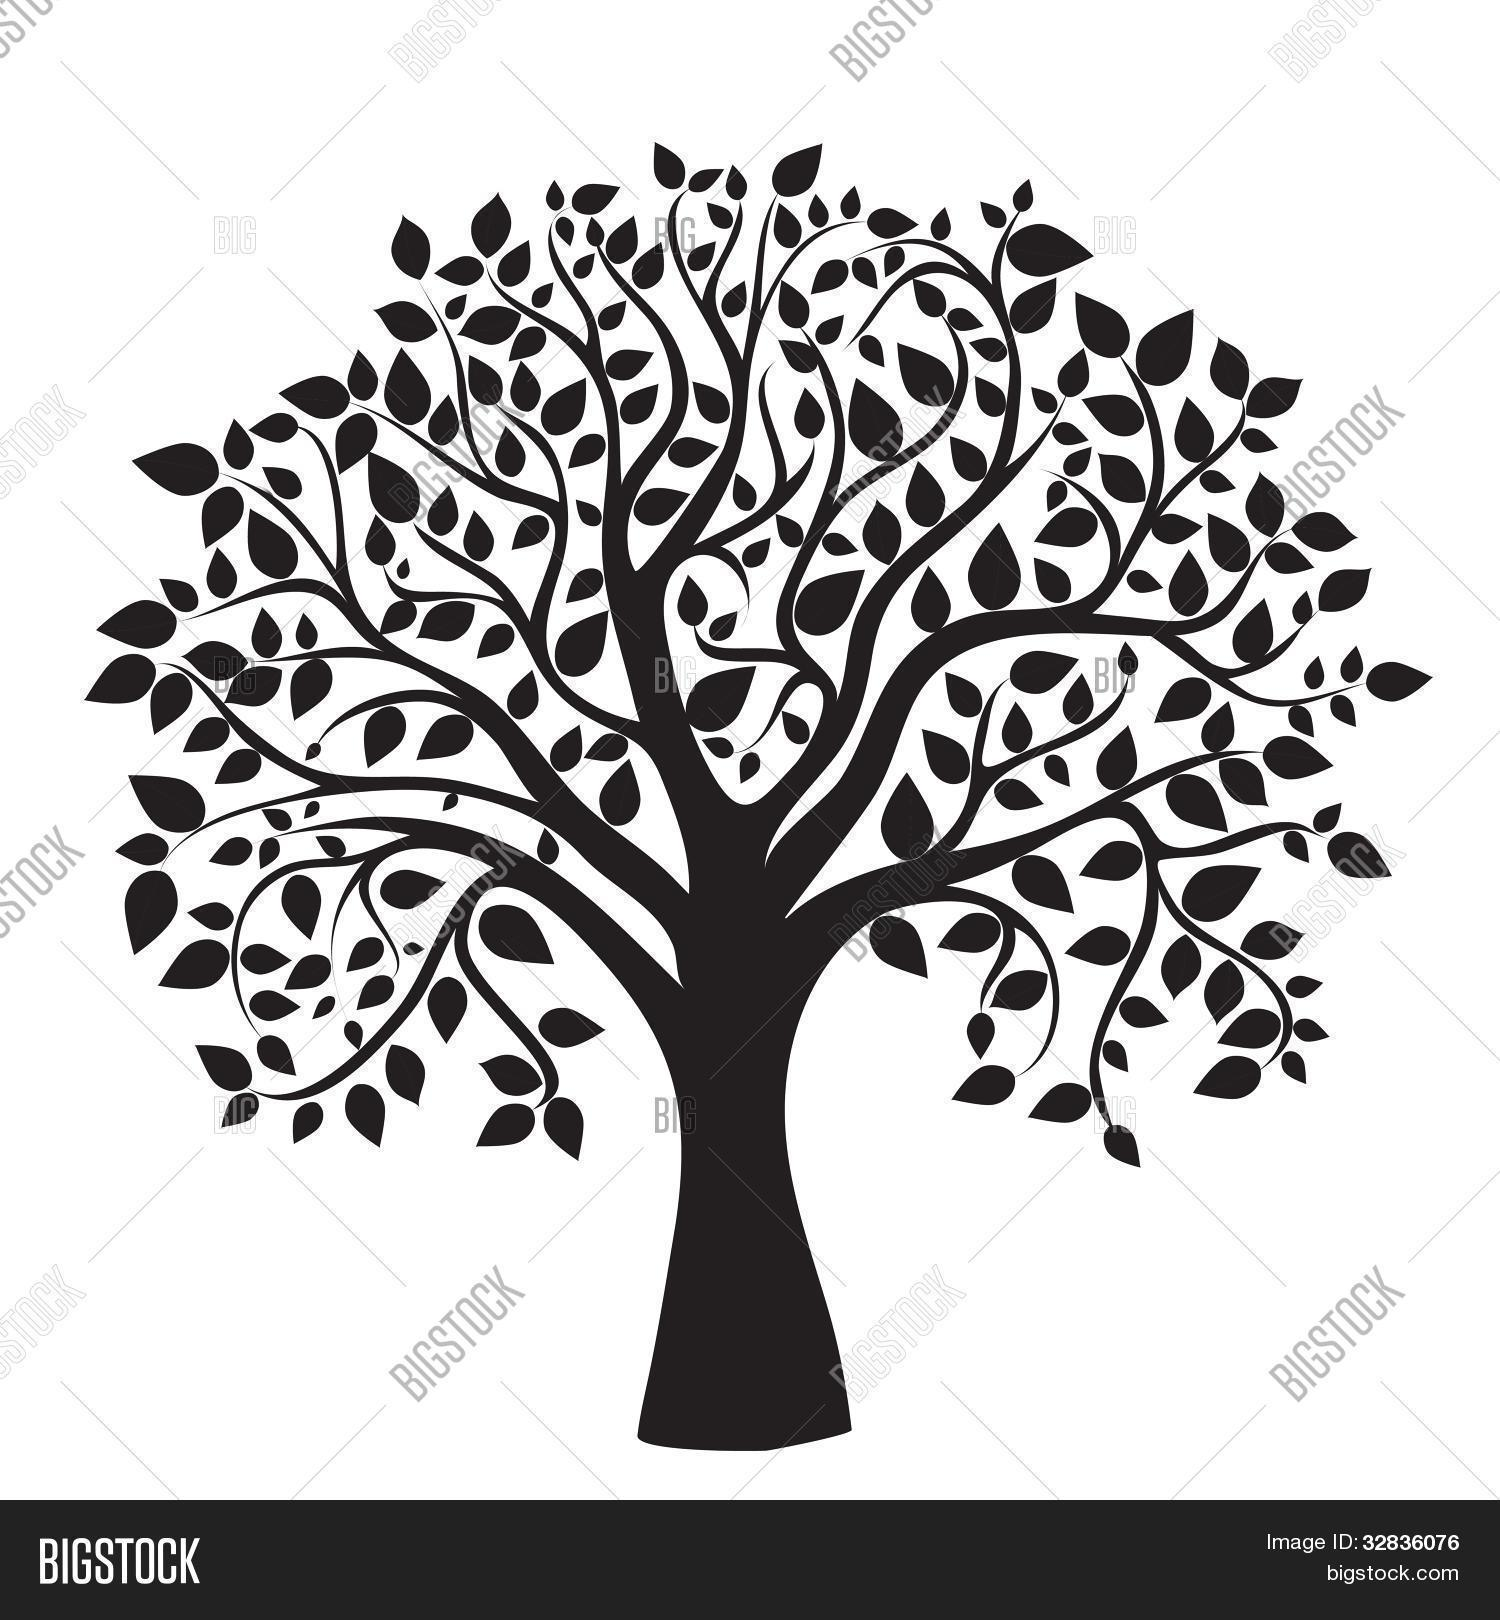 Black Tree Silhouette Isolated On Image Amp Photo